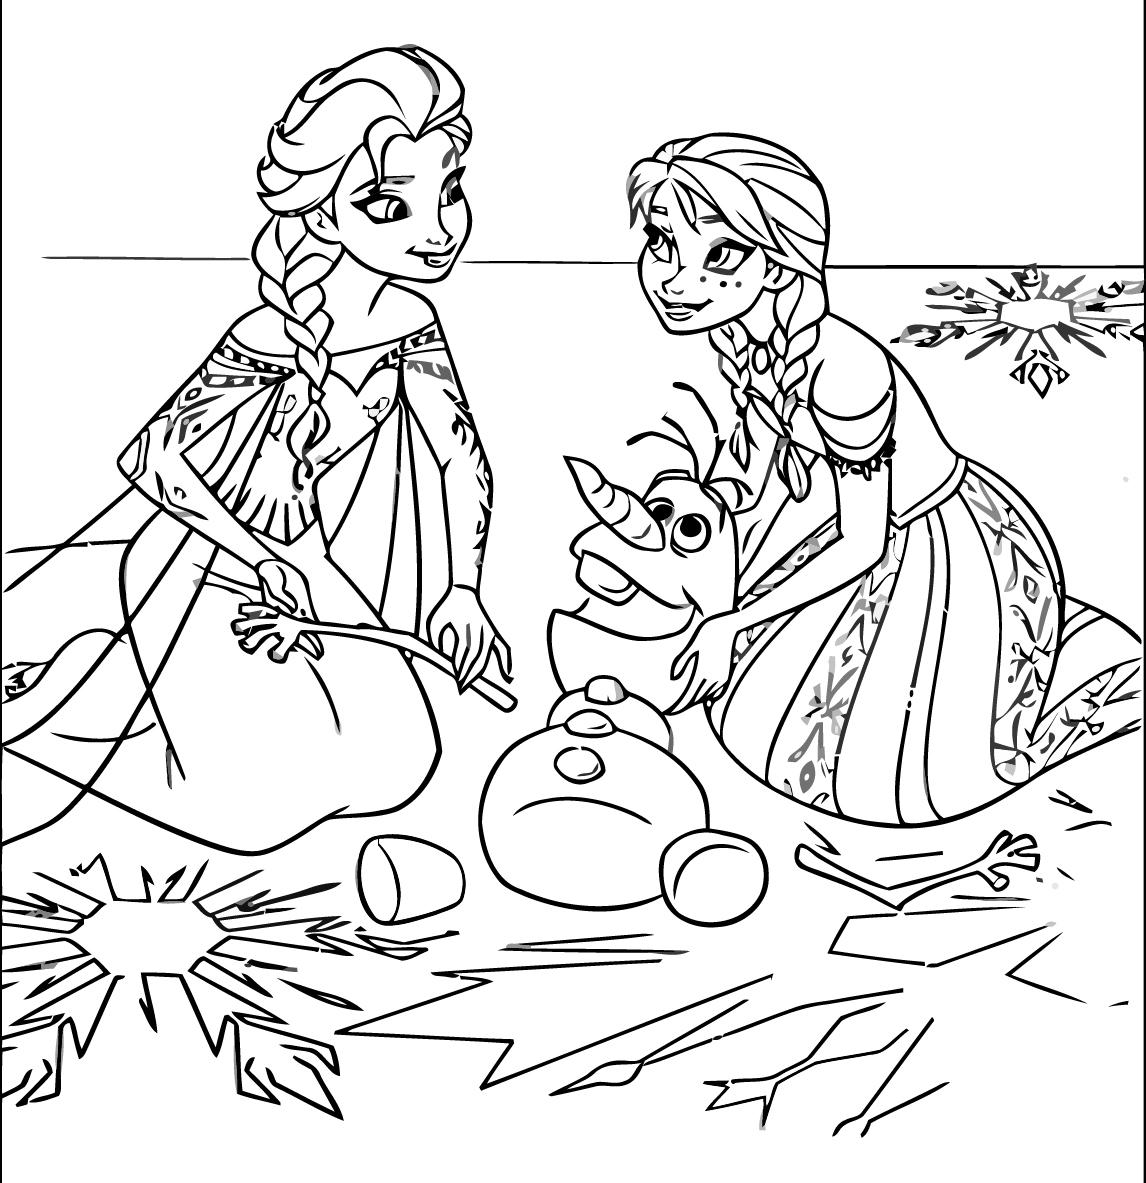 frozen colouring in sheets frozen coloring pages 4 disneyclipscom frozen in colouring sheets